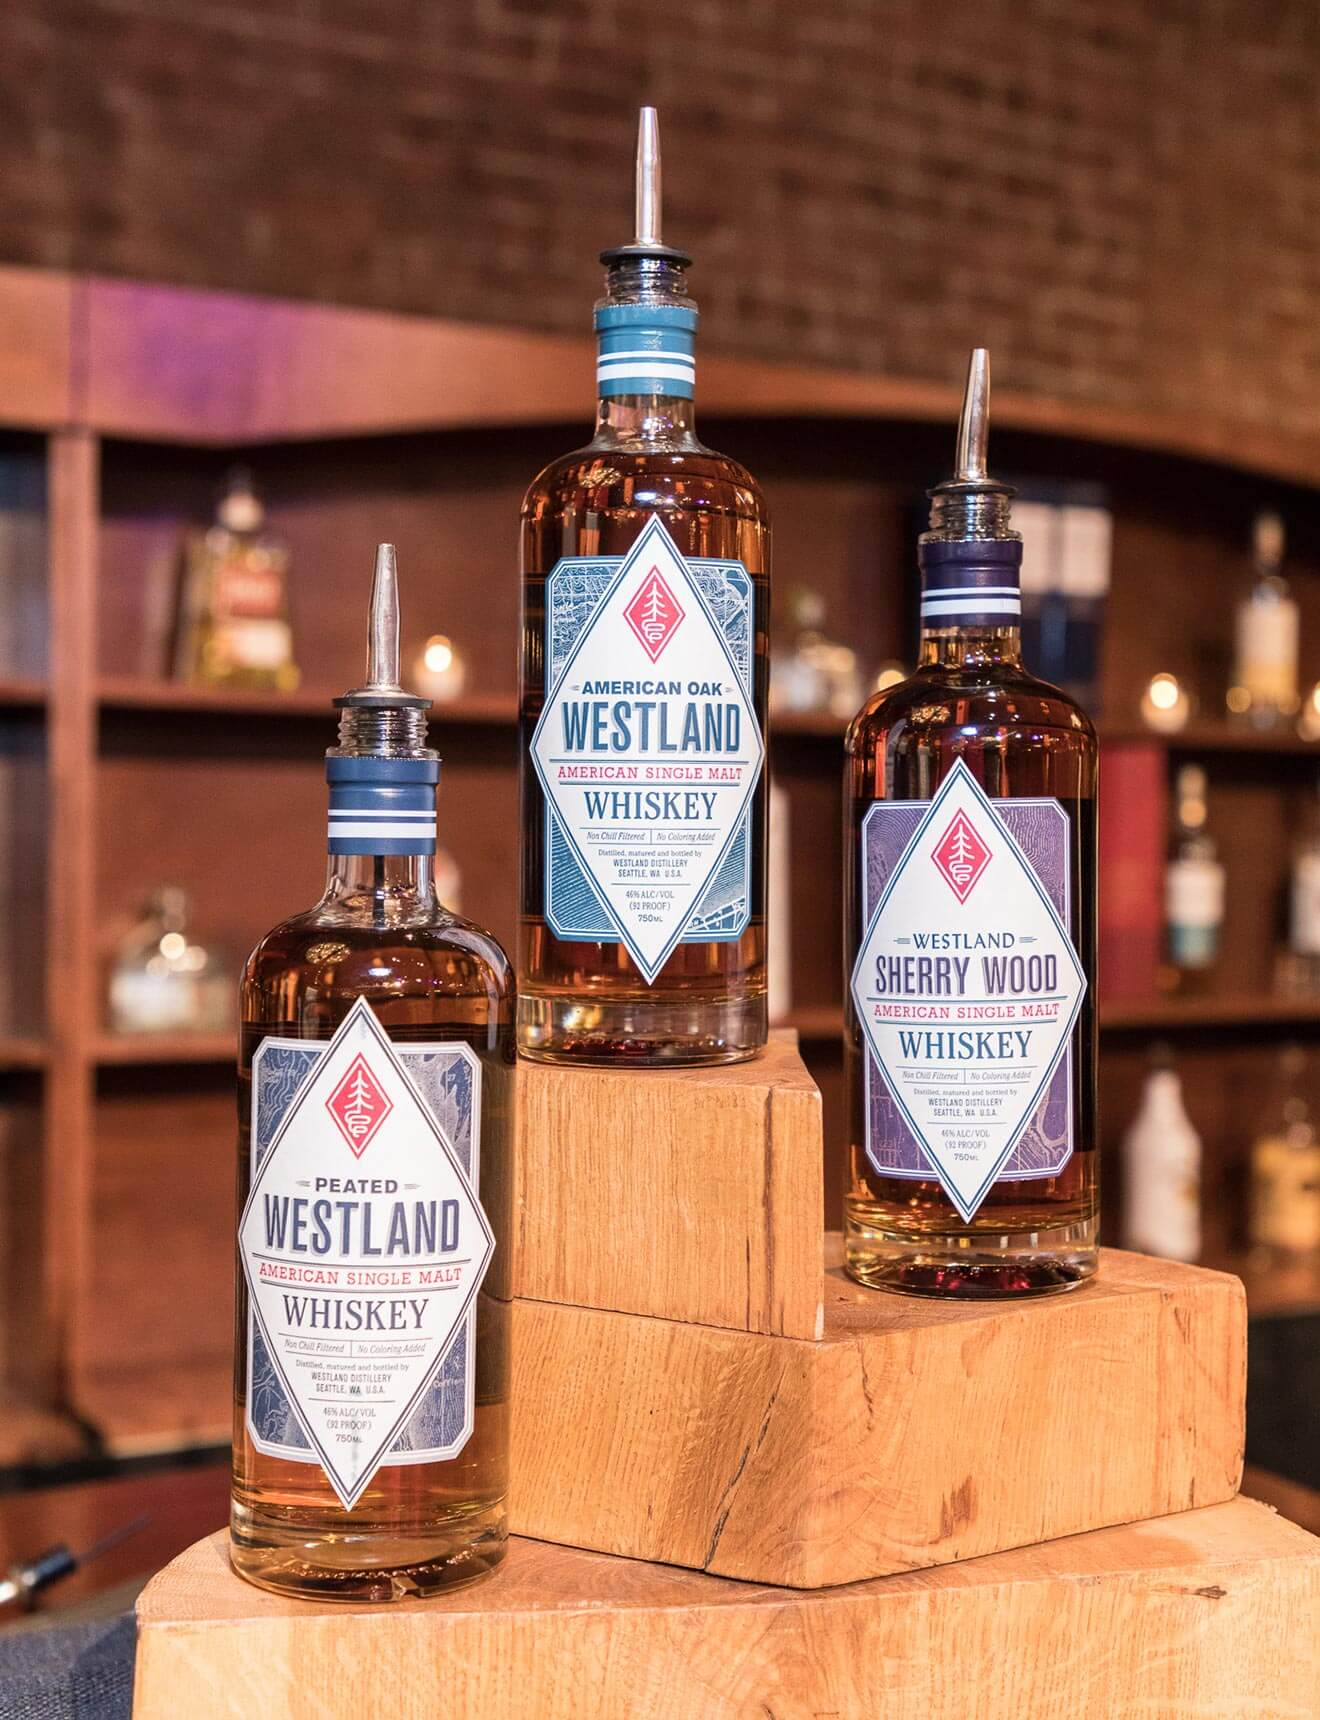 Westland Whiskey, bottles on trophy stand display